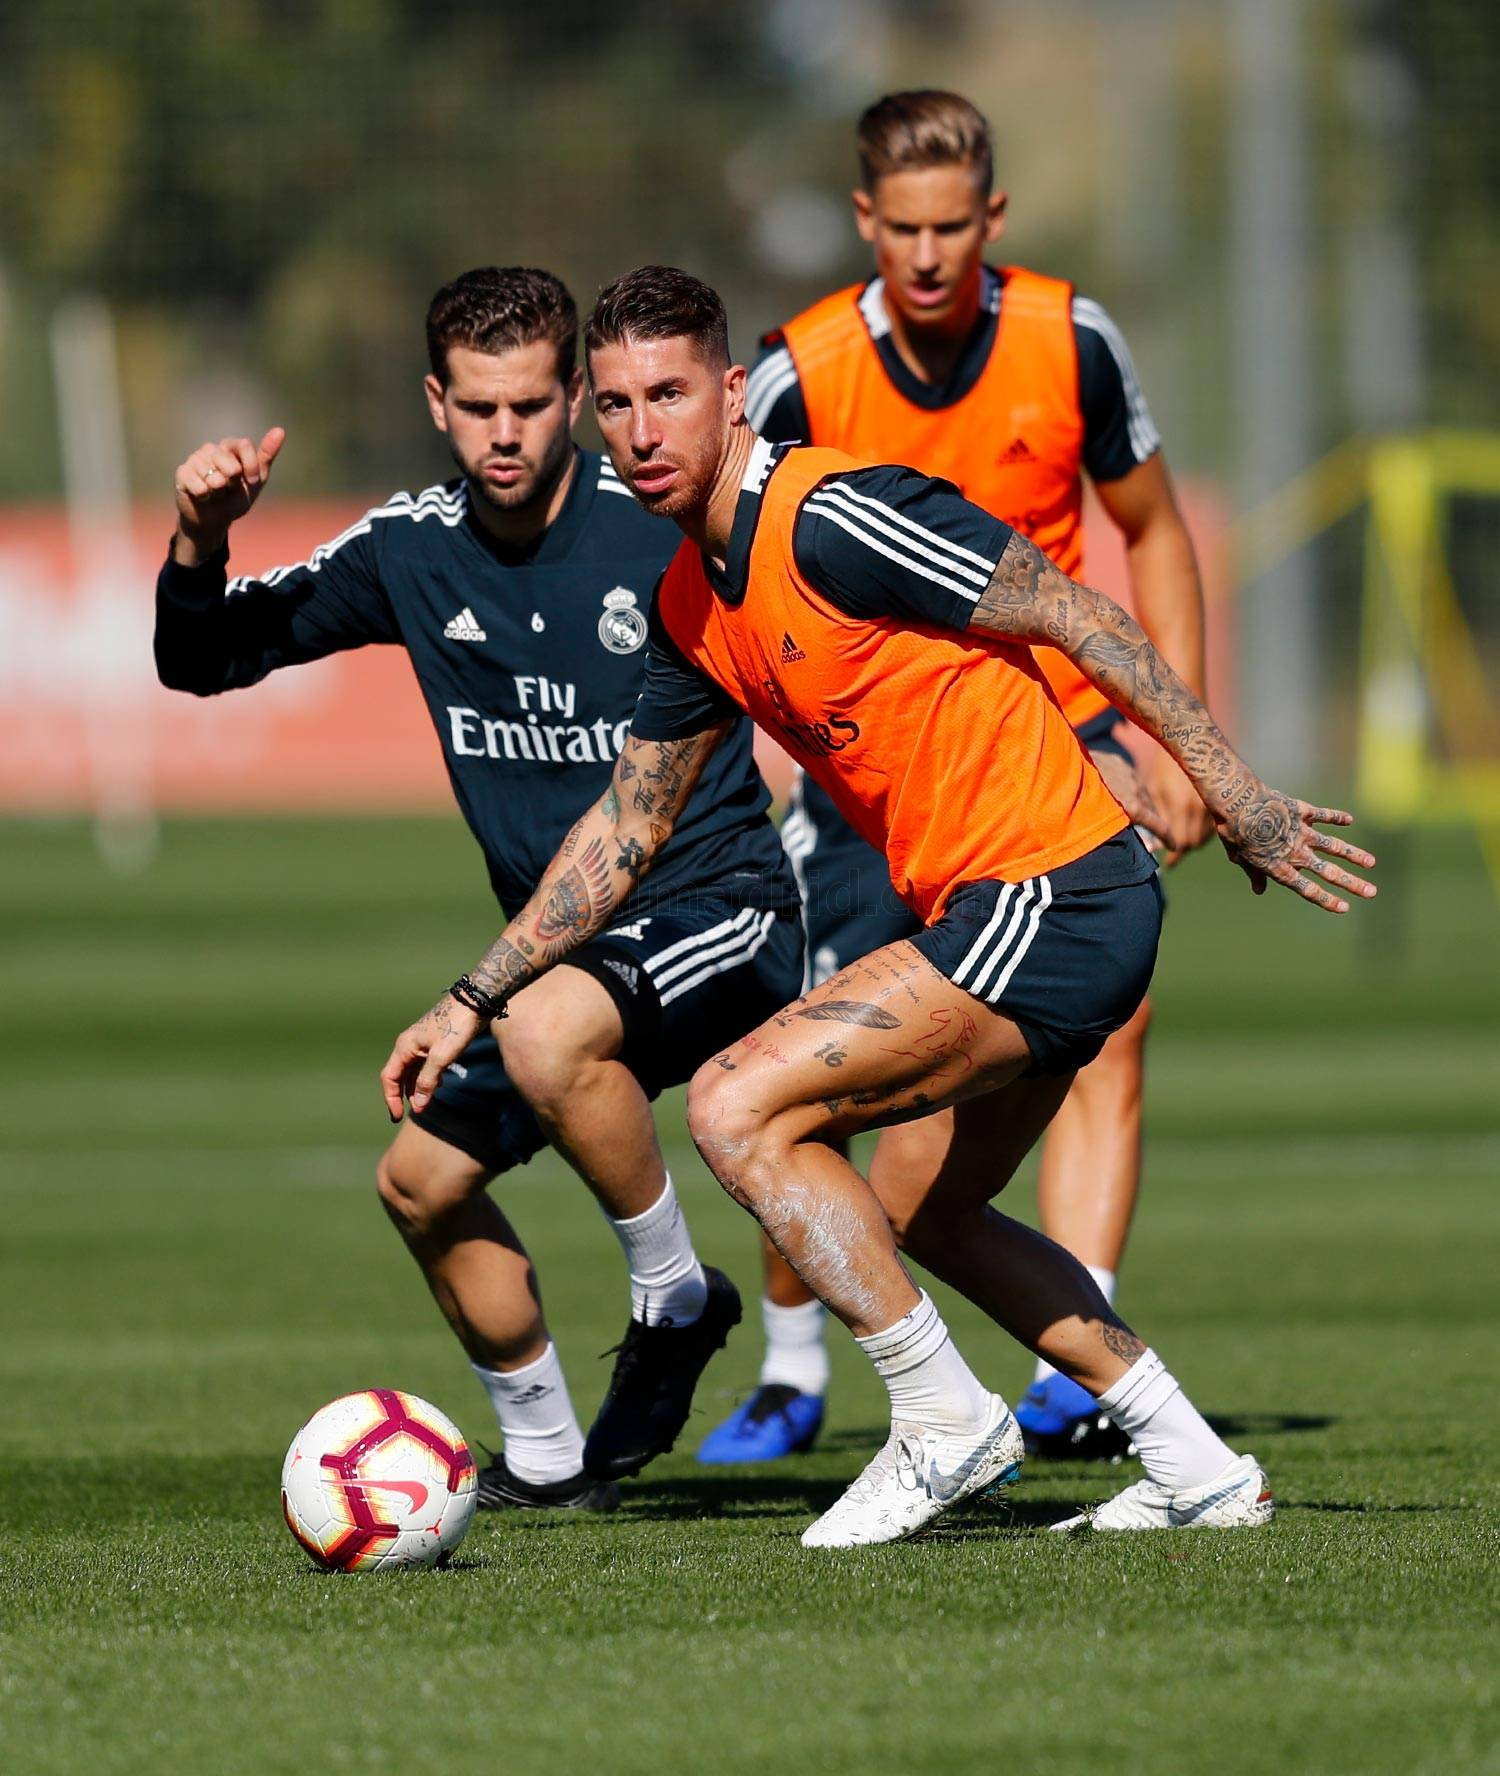 Real Madrid - Entrenamiento del Real Madrid - 17-10-2018